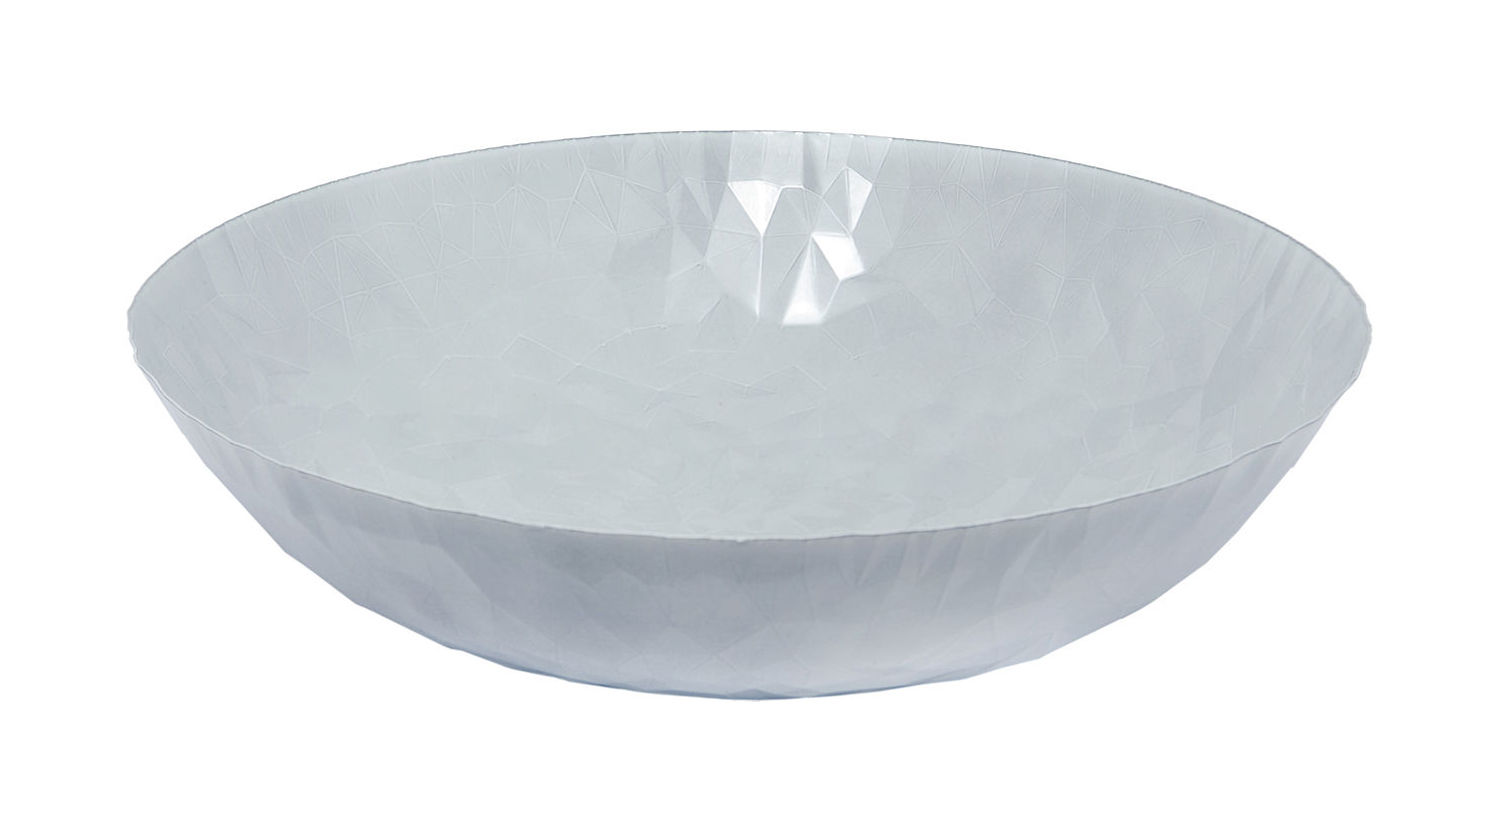 Tableware - Fruit Bowls & Centrepieces - Joy n.11 Centrepiece by Alessi - Milky White - Stainless steel epoxy coloration resin